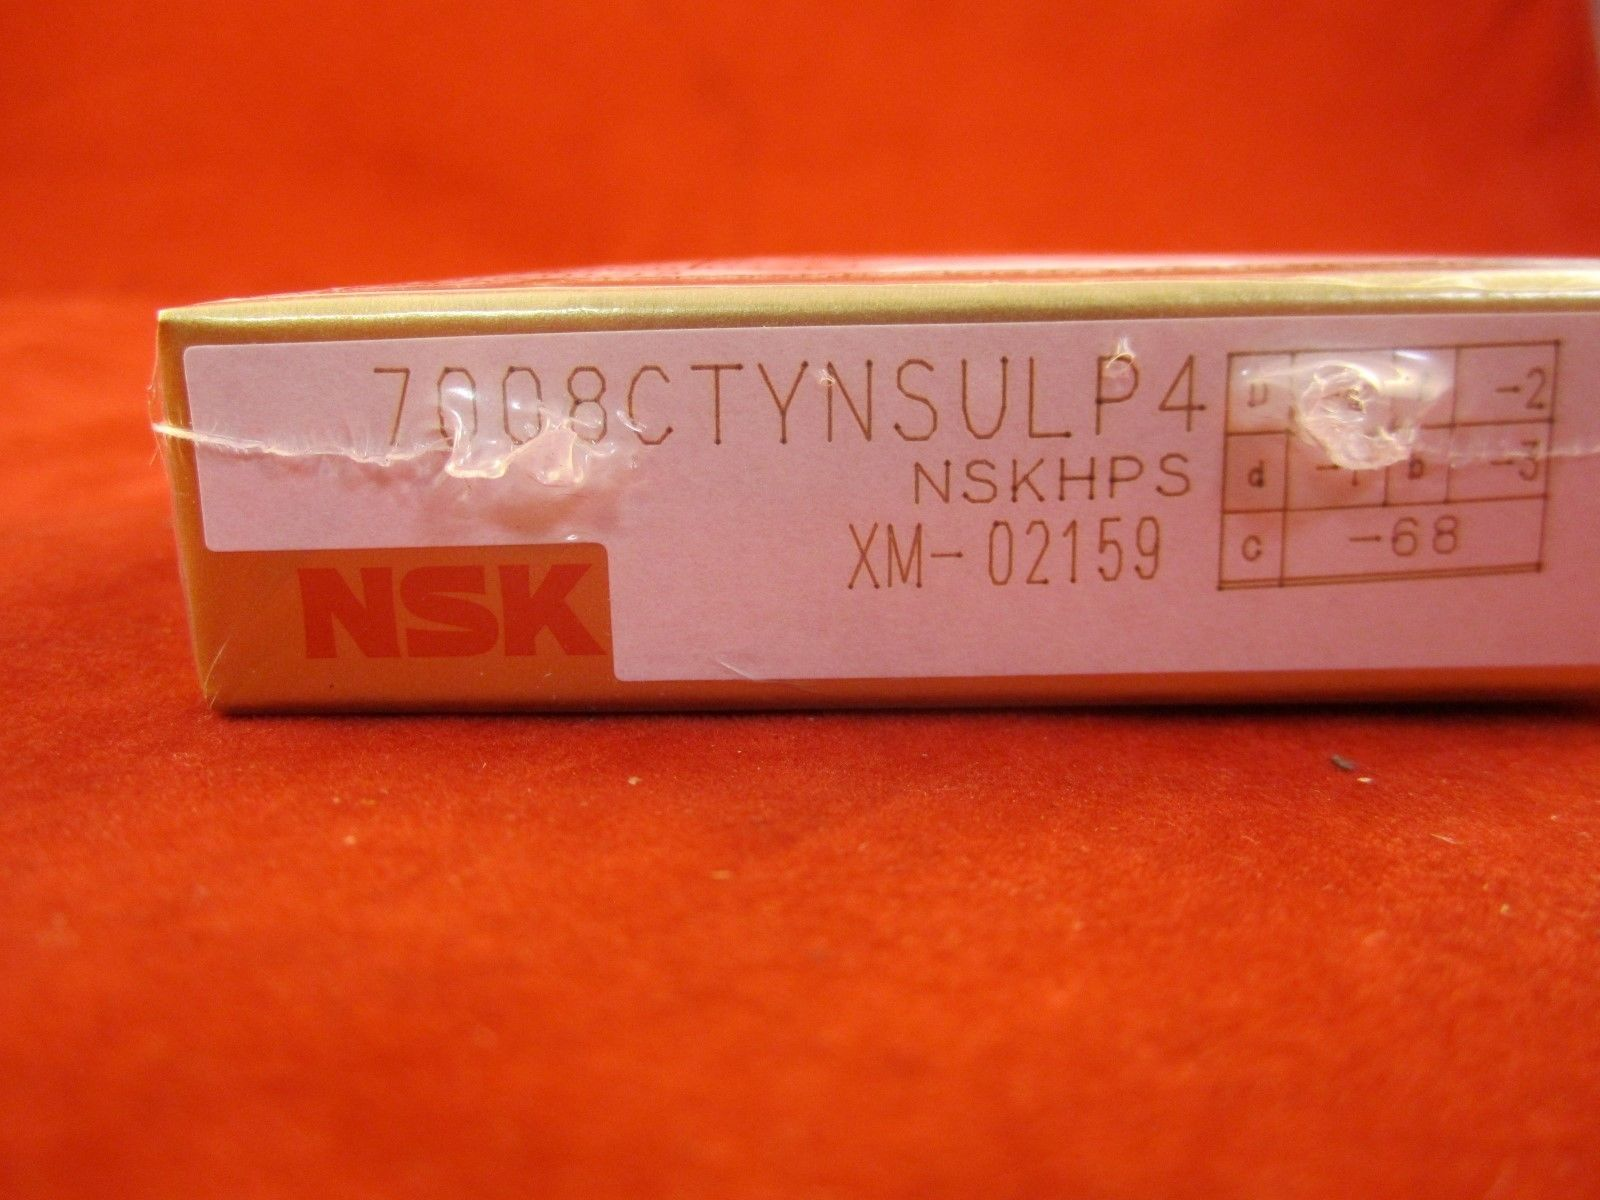 high temperature NSK Super Precision Bearing 7008CTYNSULP4